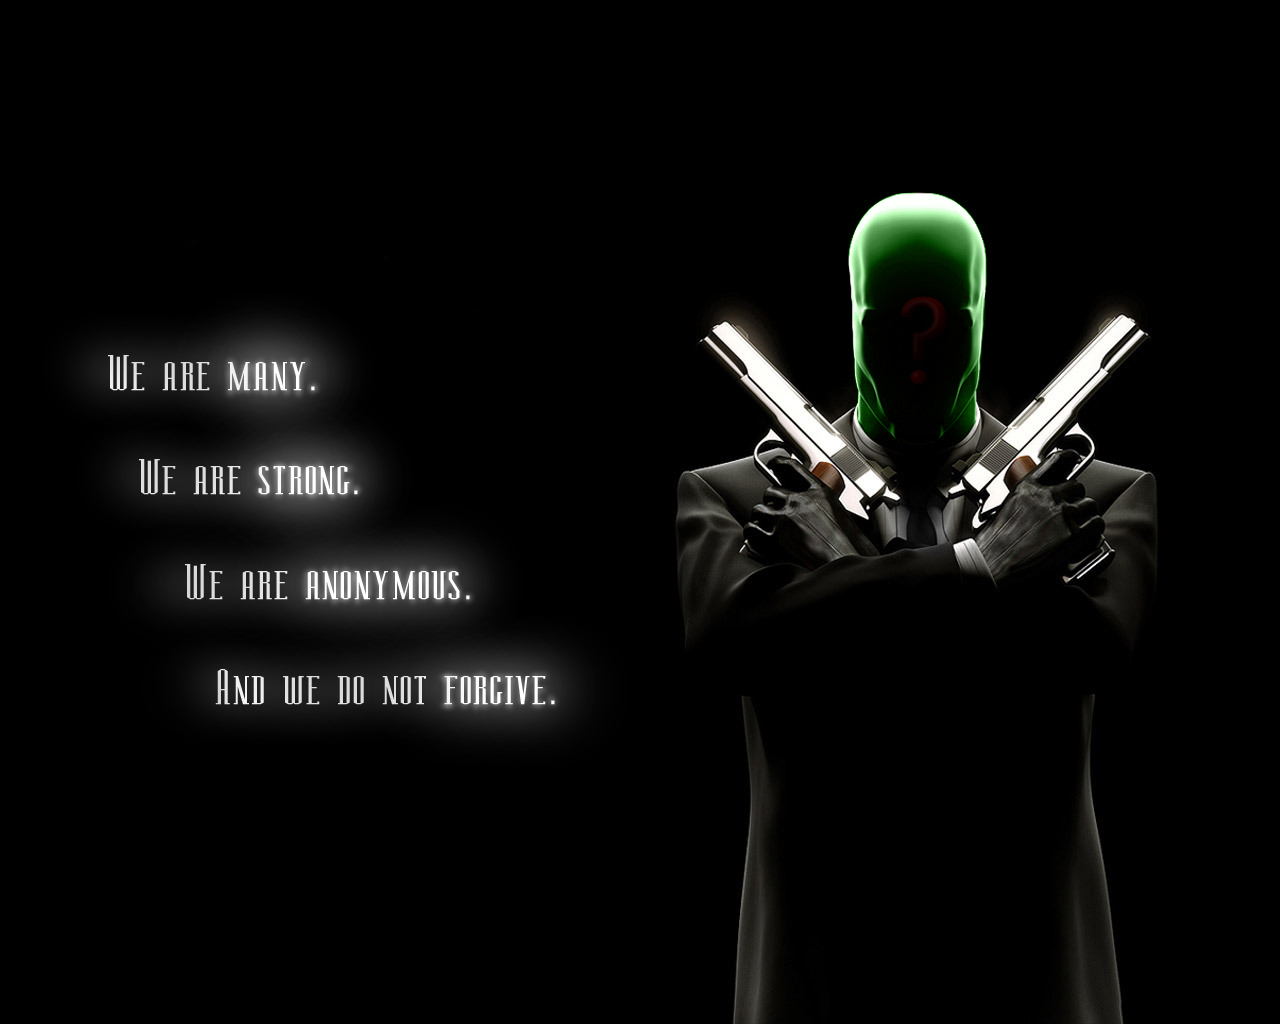 Anonymous Hacker Wallpaper Download 4k Wallpapers For Hit Man 2212885 Hd Wallpaper Backgrounds Download